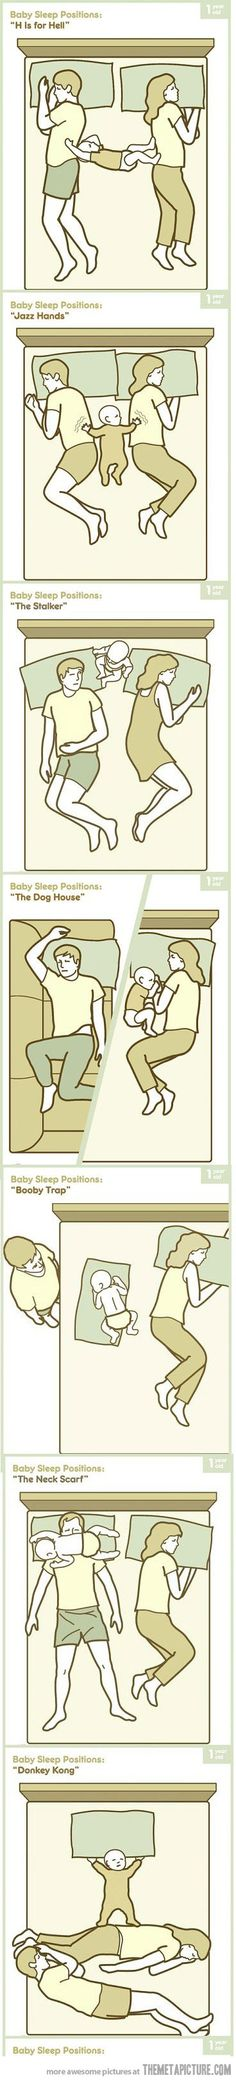 "Baby sleeping positions...can't stop laughing! ""The Stalker"" is my fave!"